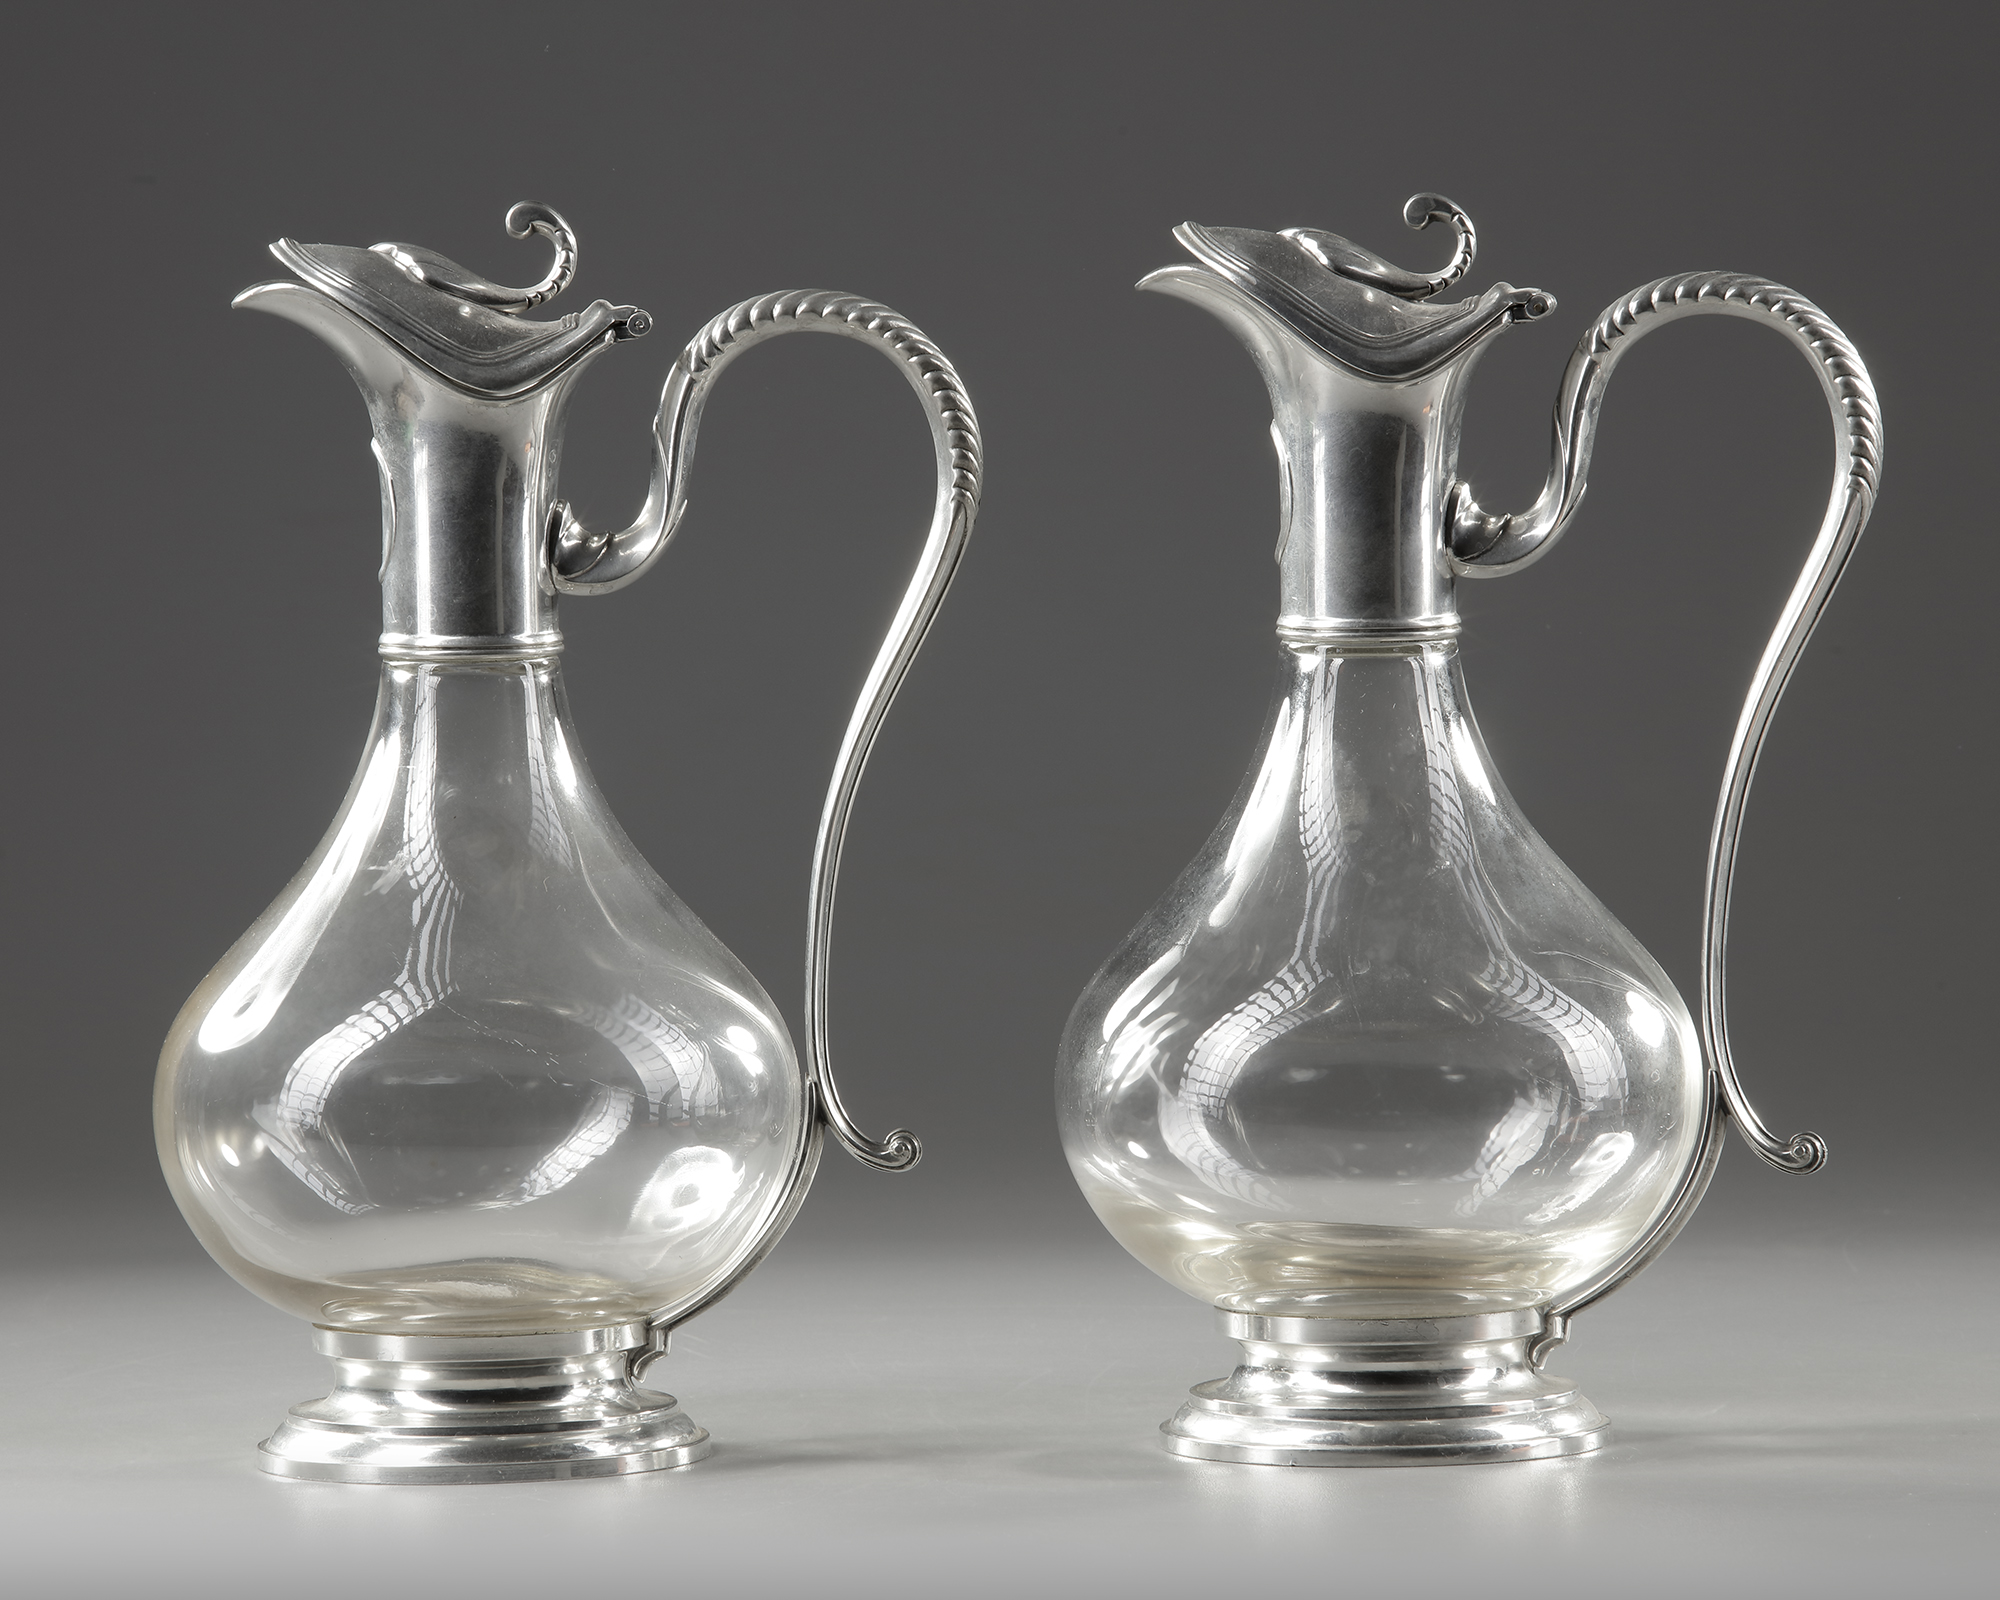 A PAIR OF CRYSTAL AND SILVER METAL EWERS, LATE 19TH CENTURY